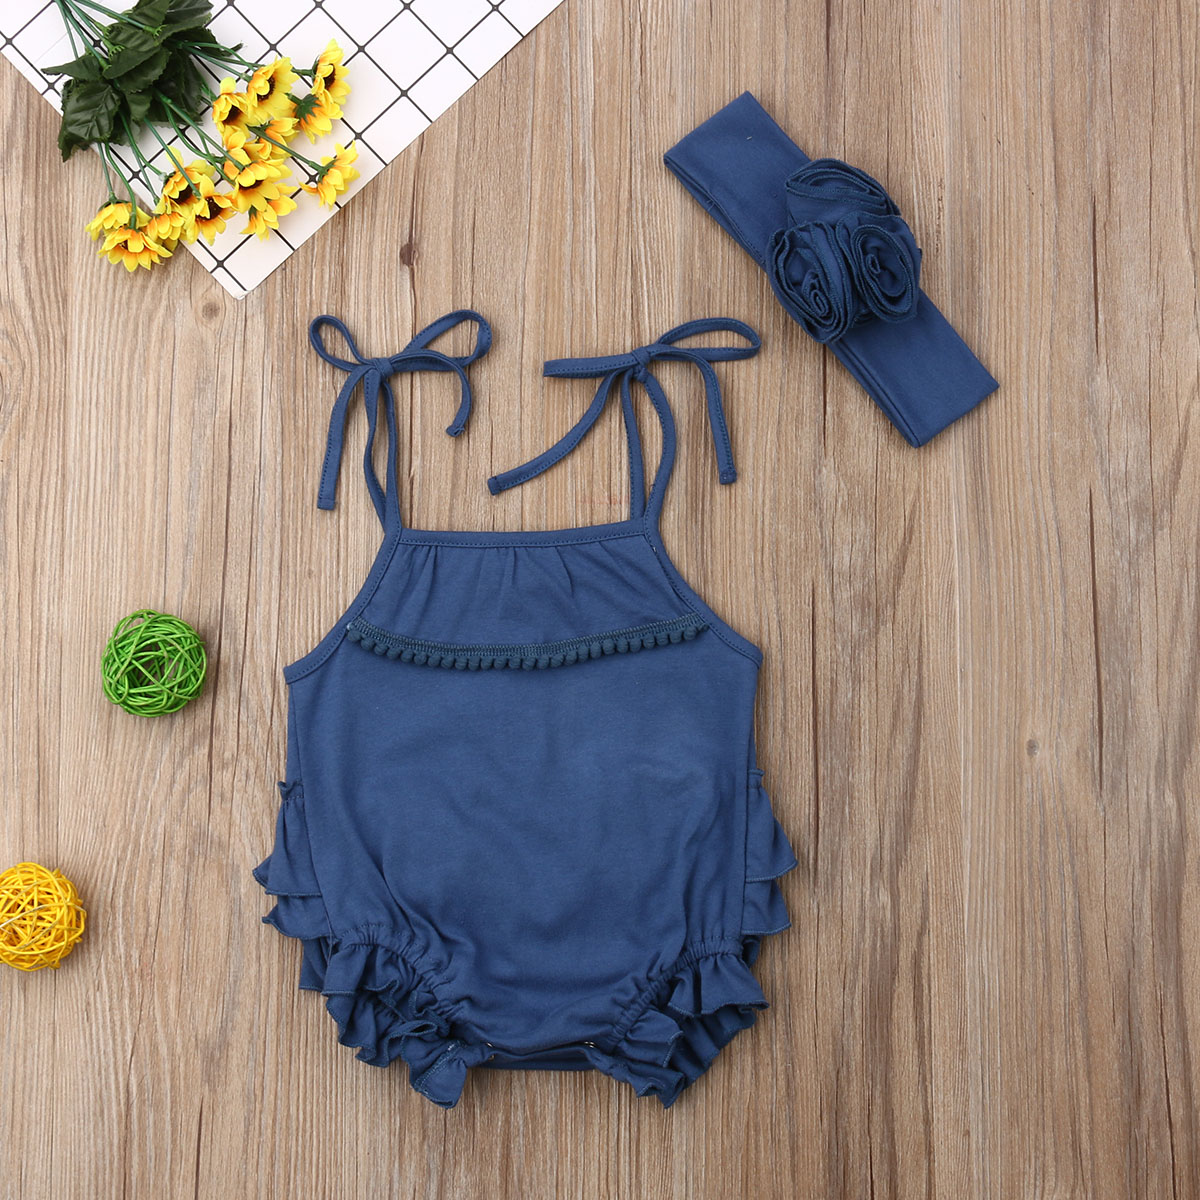 2Pcs Newborn Baby Girls Camisole Bodysuit Jumpsuit Headband Outfit Sunsuit Clothes